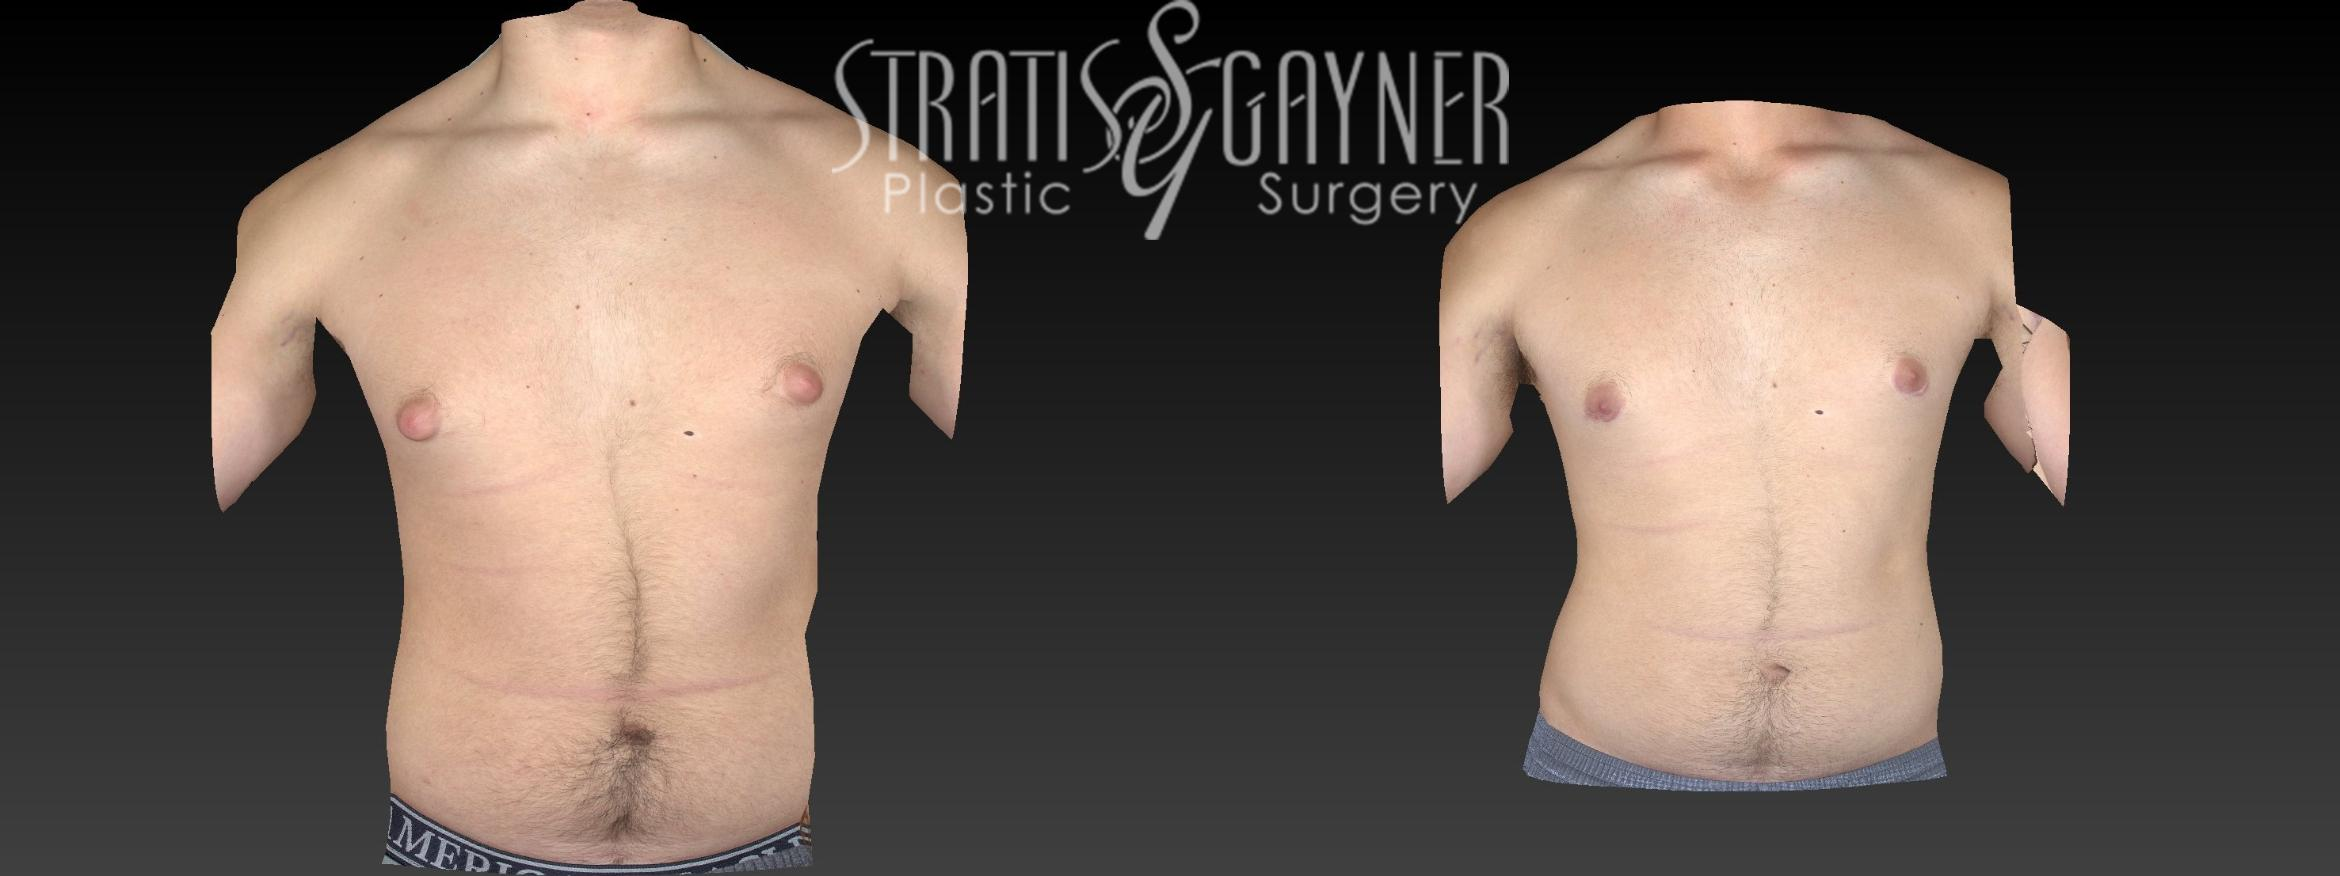 Male Breast Reduction Case 32 Before & After View #1 | Harrisburg, PA | Stratis Gayner Plastic Surgery